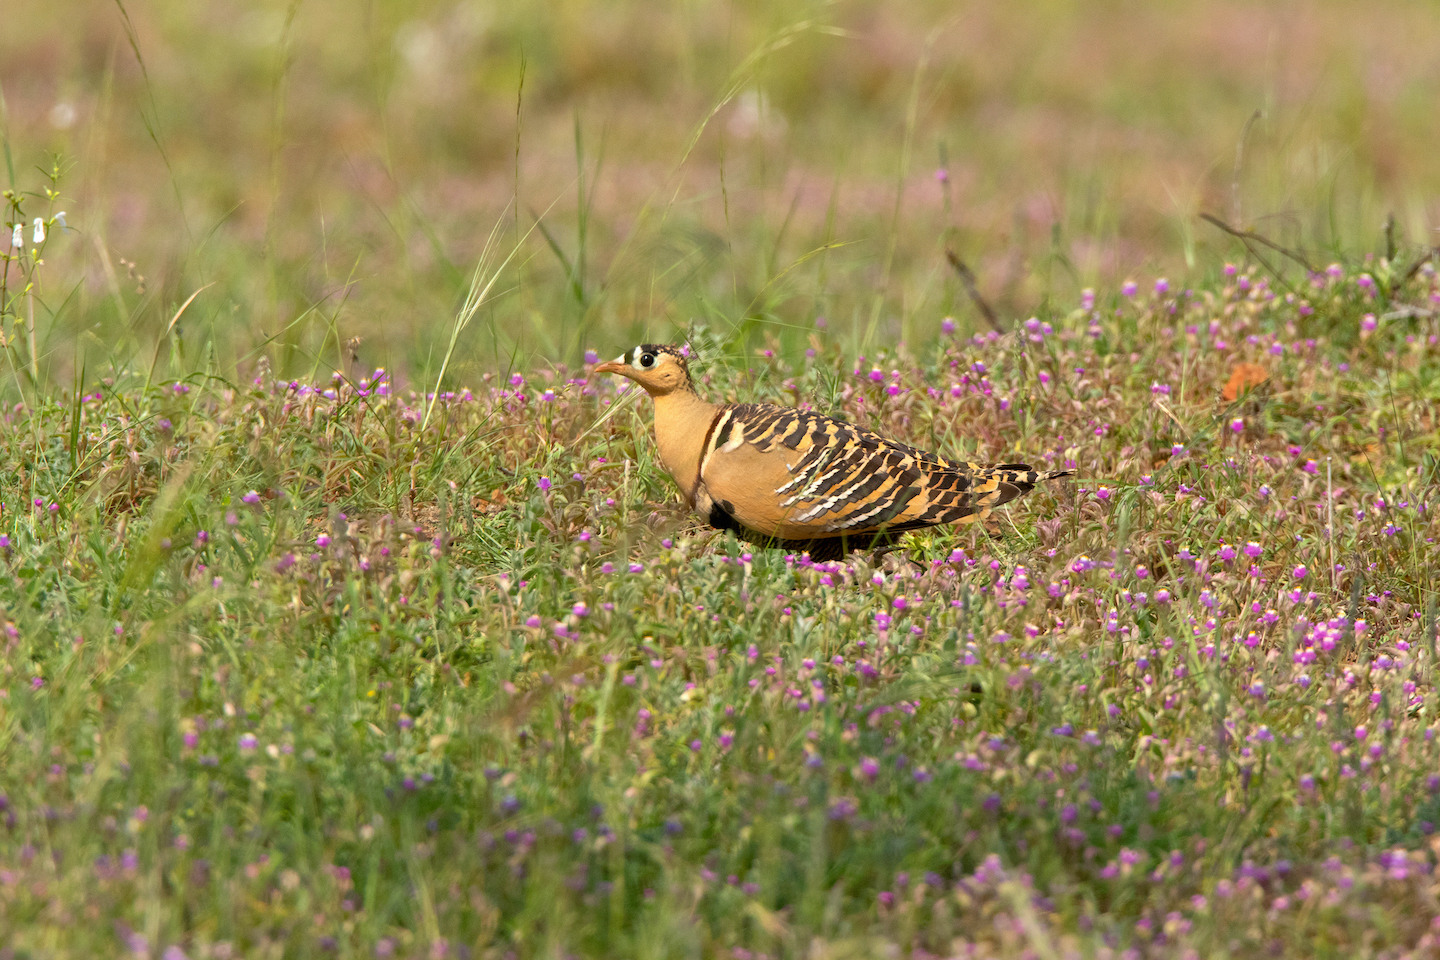 Apart from Maharashtra, the painted sandgrouse is found in Rajasthan, Karnataka, and Madhya Pradesh. This male bird was spotted in the Mayureshwar Wildlife Sanctuary in Maharashtra. Photo: Mihir Godbole